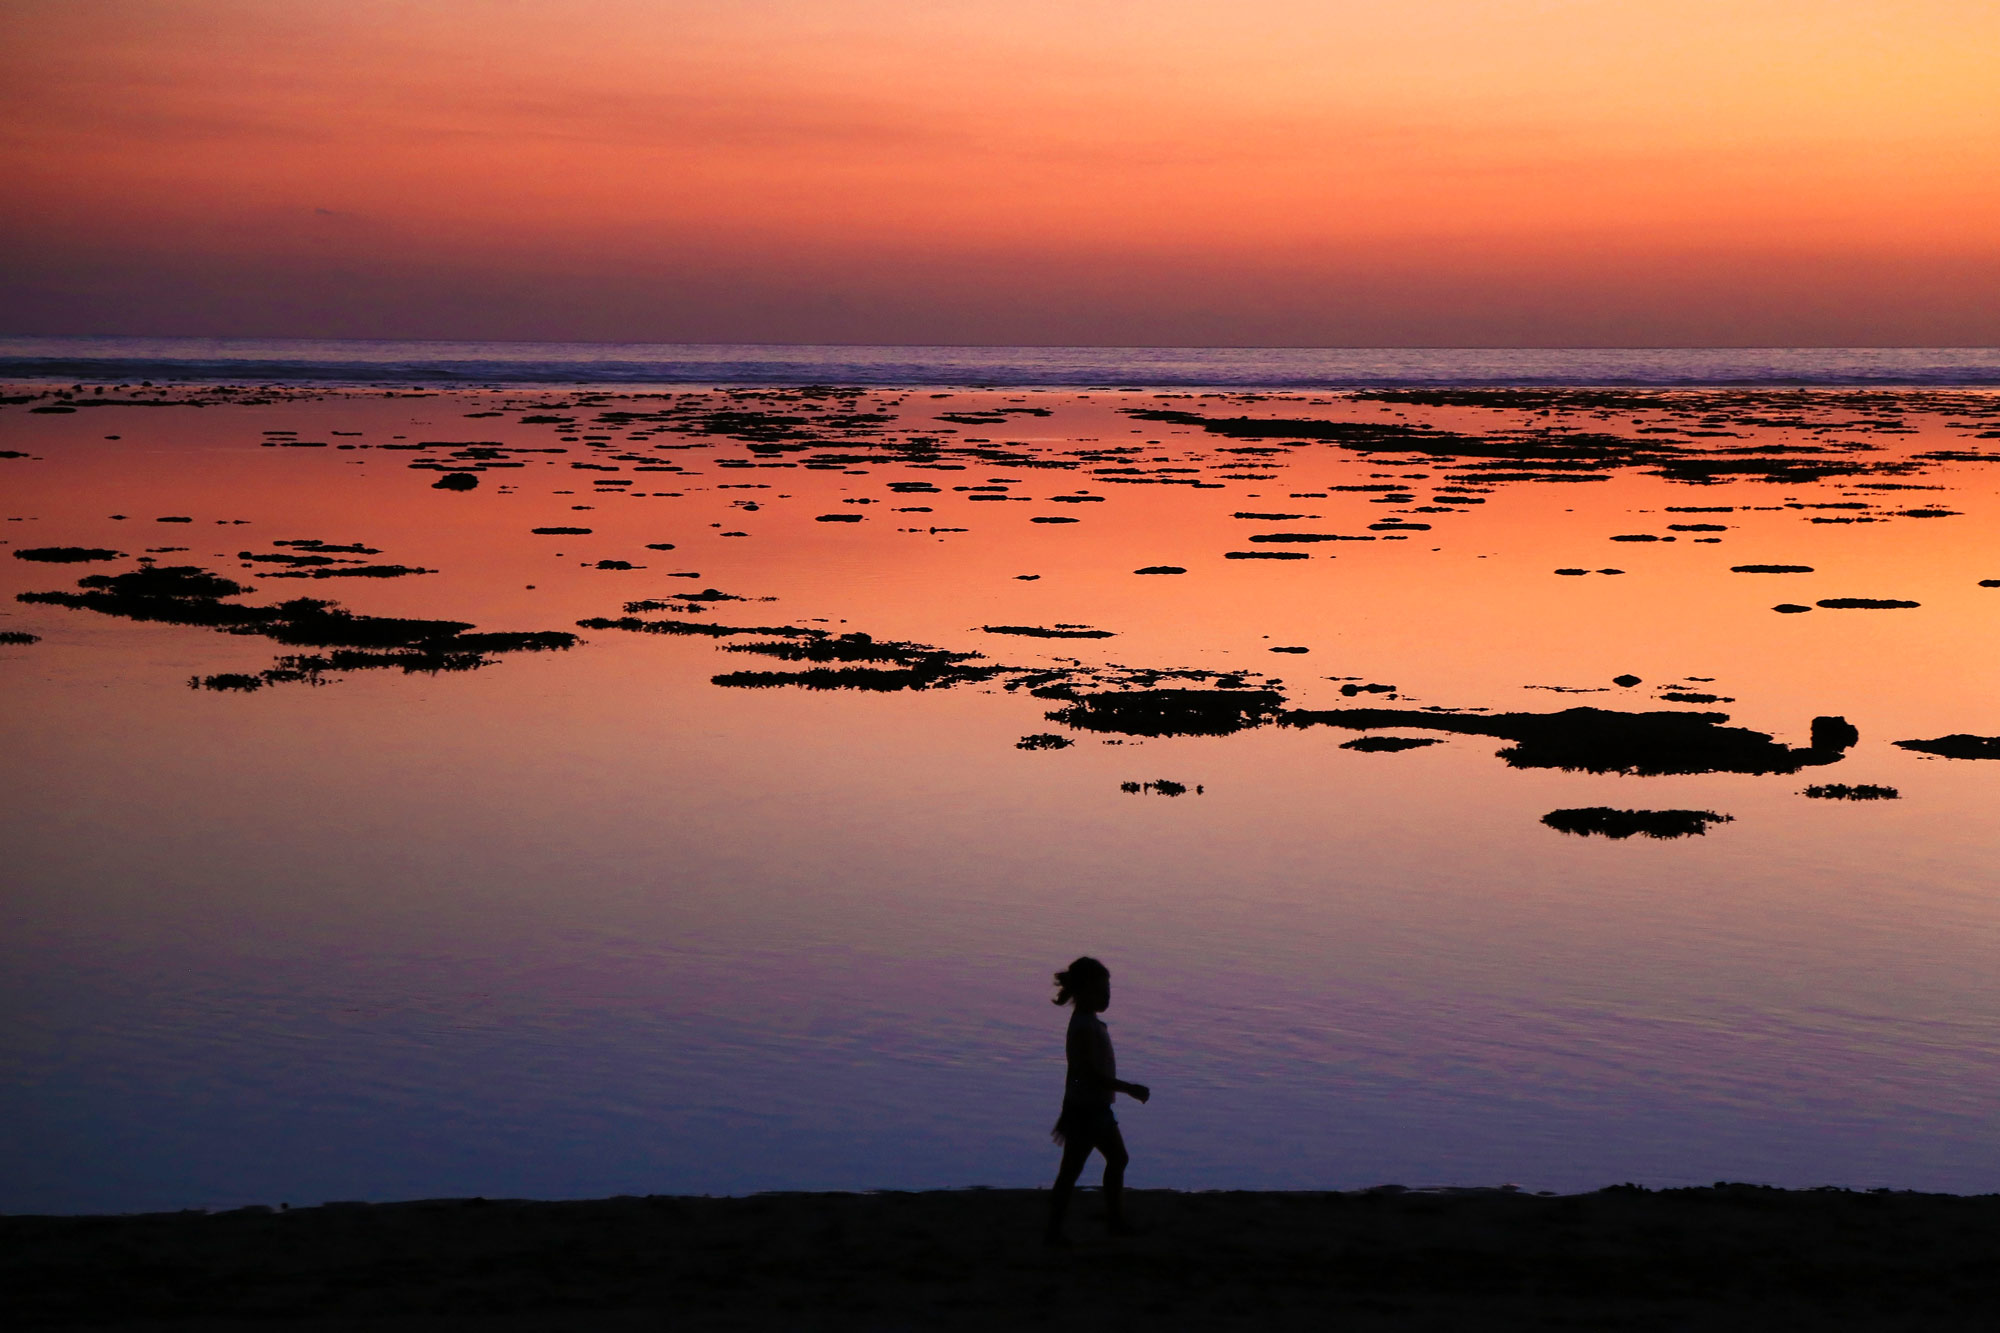 The sun sets on Reunion Island, silhouetting a young girl playing on the beach. (Photo by Heather Mason)